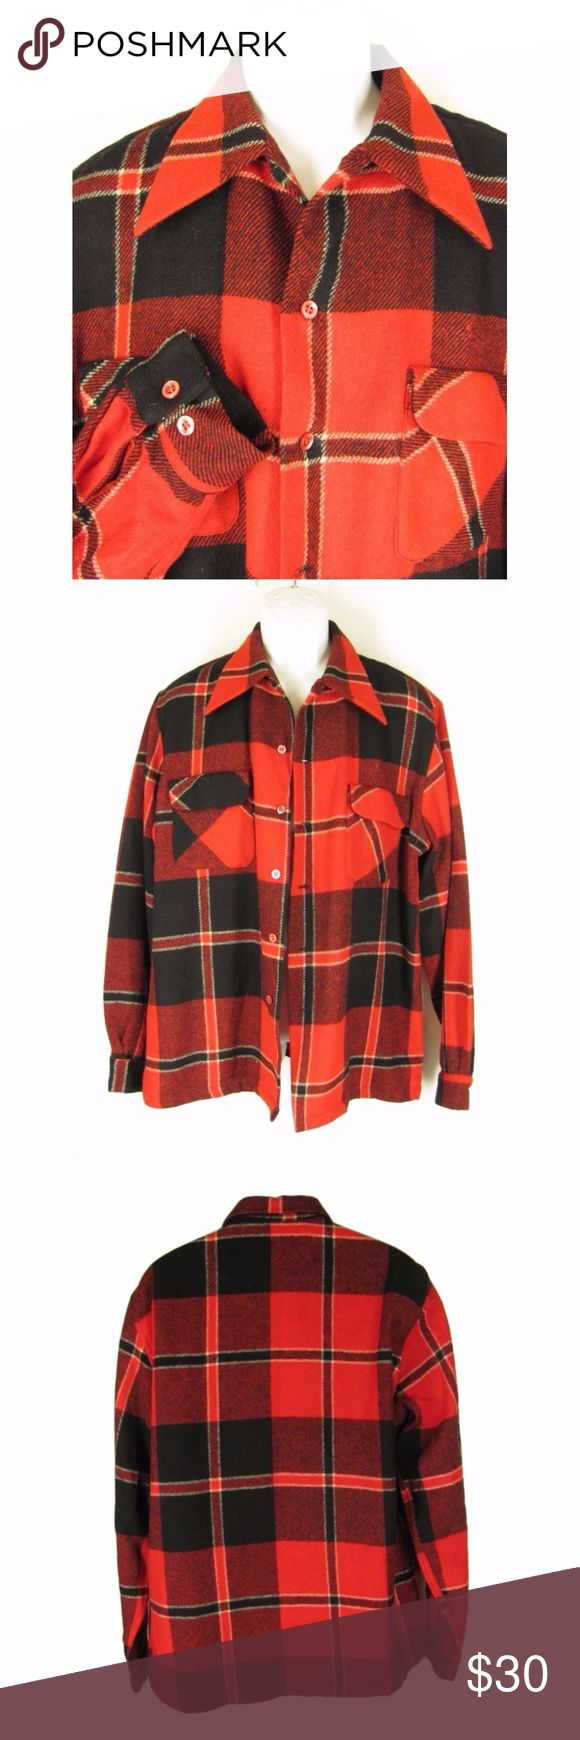 "Vintage McGregor Wool Shirt L Red Black Plaid Here is a manly vintage 1950's McGregor shirt jacket. Made of 100% virgin wool in a red, black and white big plaid. It has a wide pointed collar, button down front, 2 chest pockets with flap closure and long sleeves. The hem is straight, no side vents. There is a quarter lining in the back. 3 small holes  on the front, 1 under arm.  20"" from shoulder seam to shoulder seam 25"" across chest 26"" from shoulder seam to bottom of sleeve 32"" from top of…"